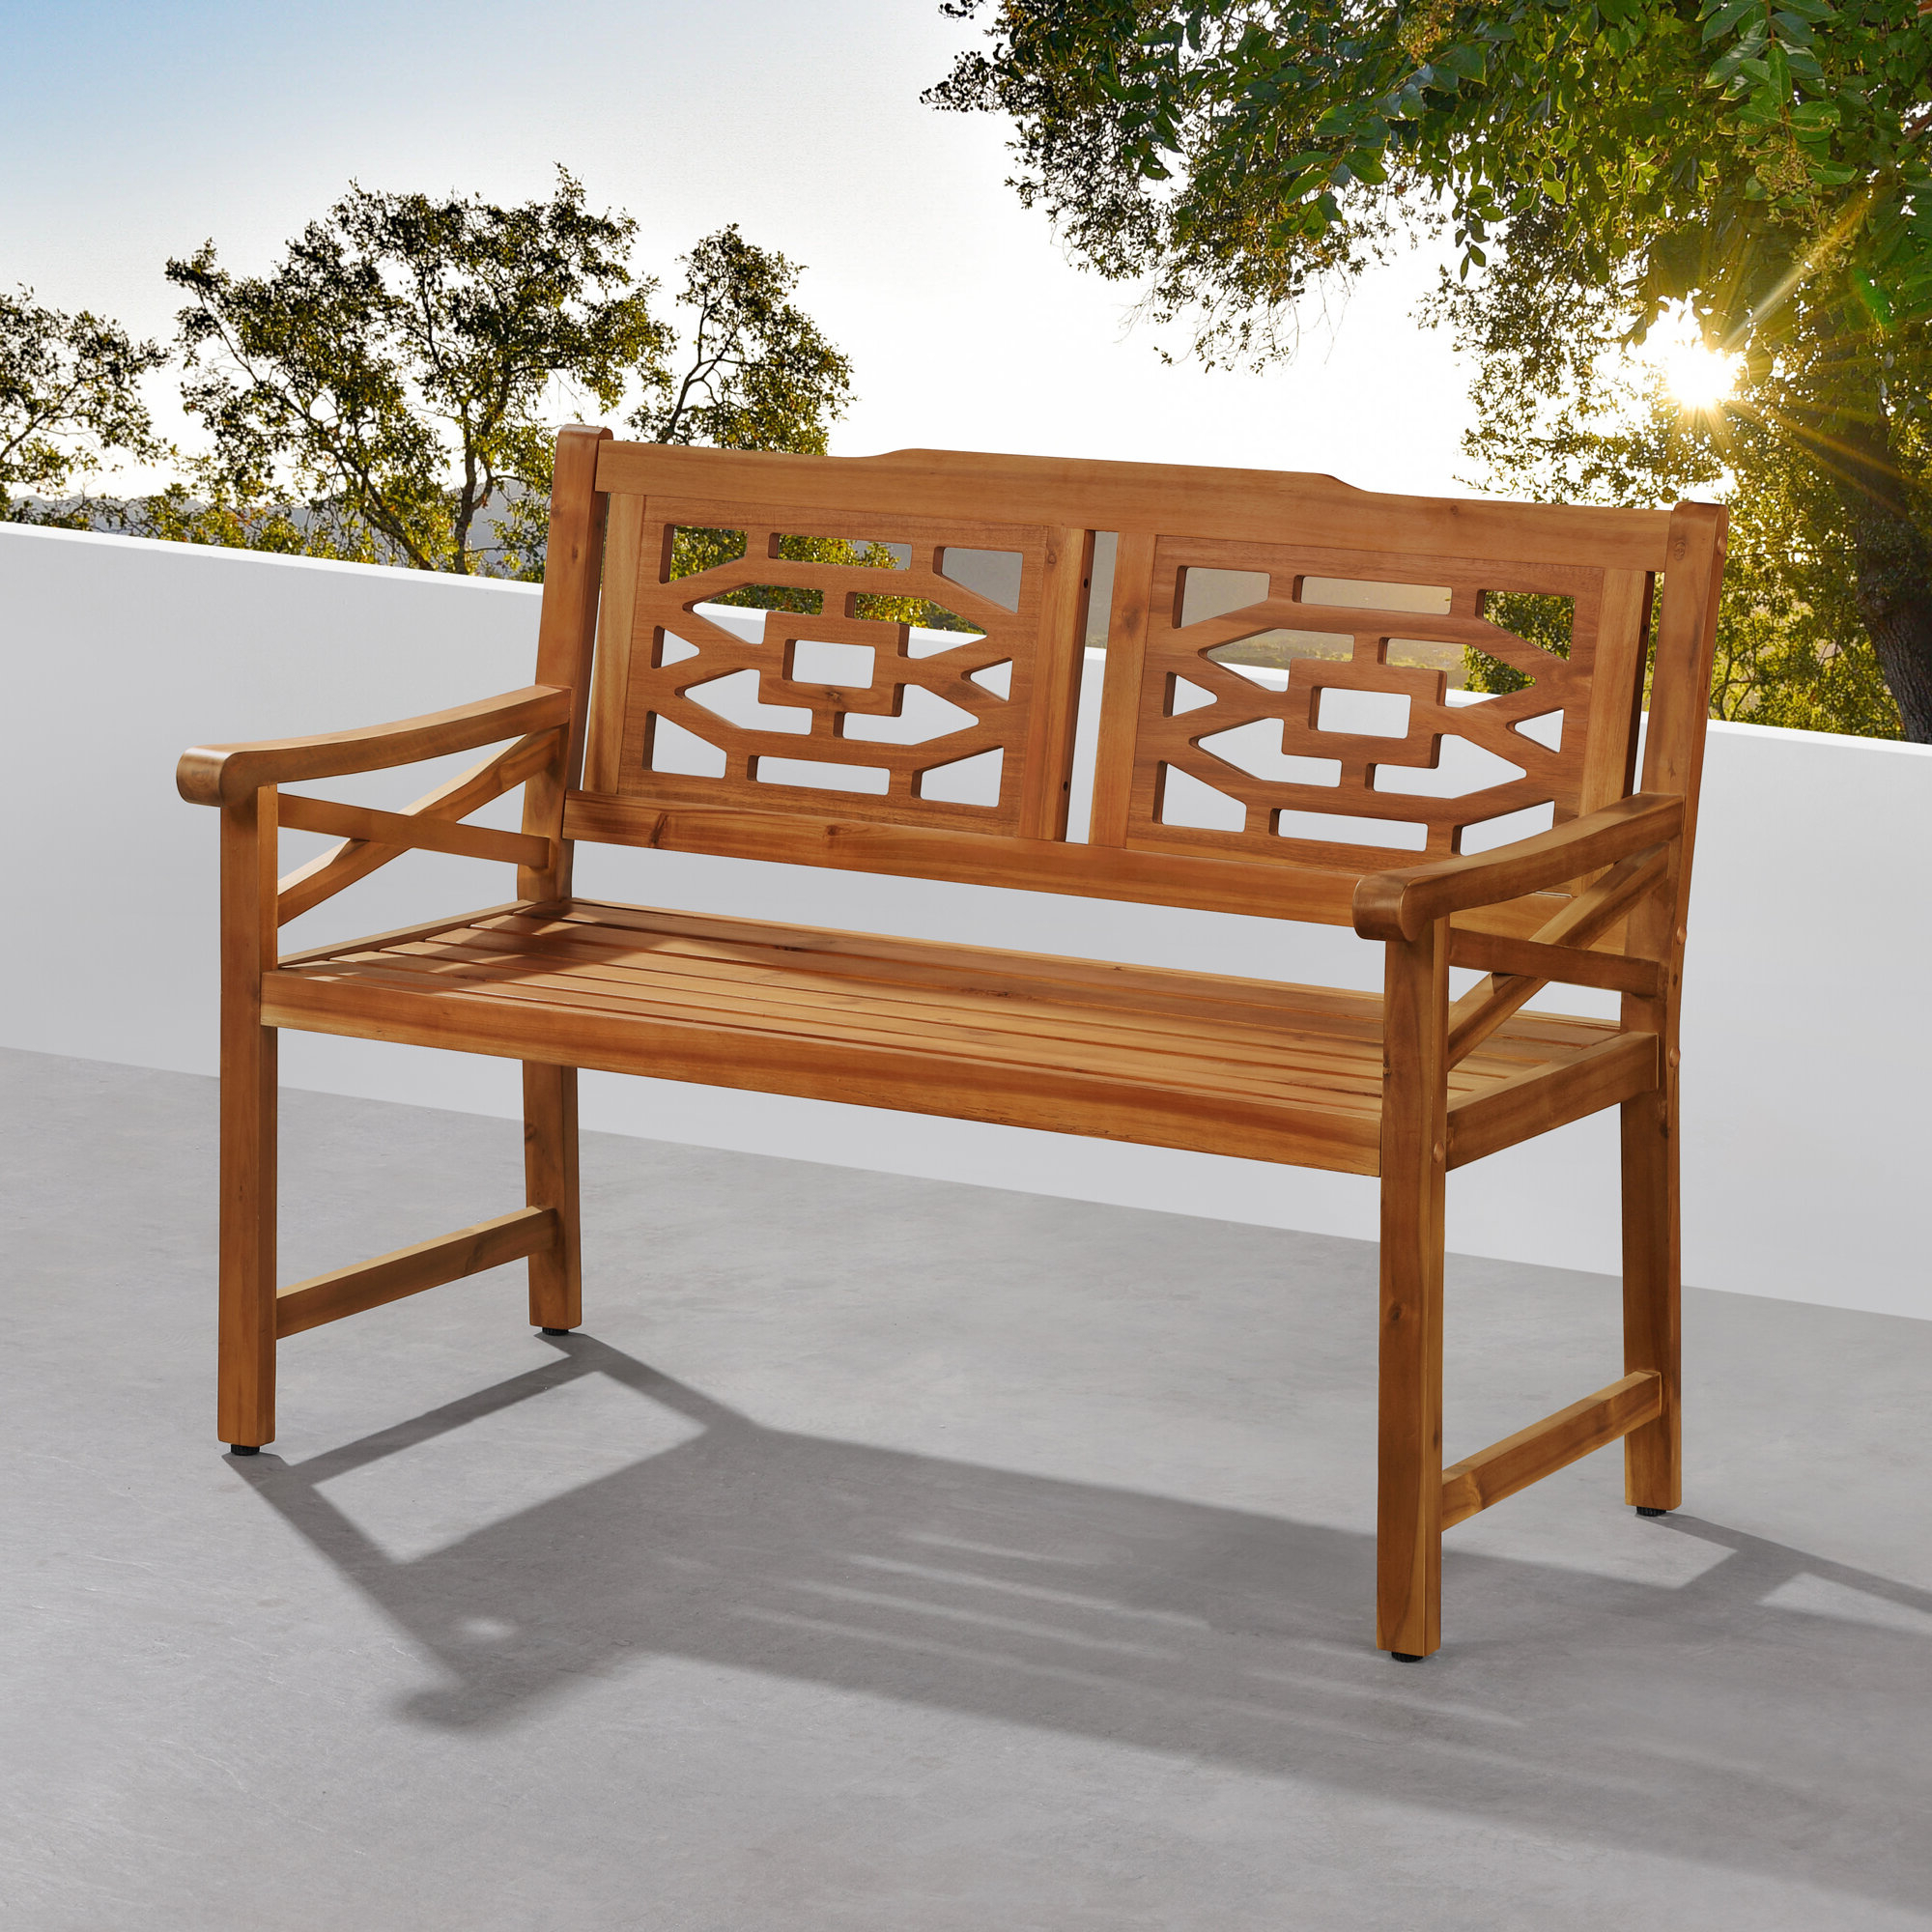 Skoog Chevron Wooden Garden Benches Pertaining To Most Up To Date Malay Wooden Garden Bench (View 18 of 30)